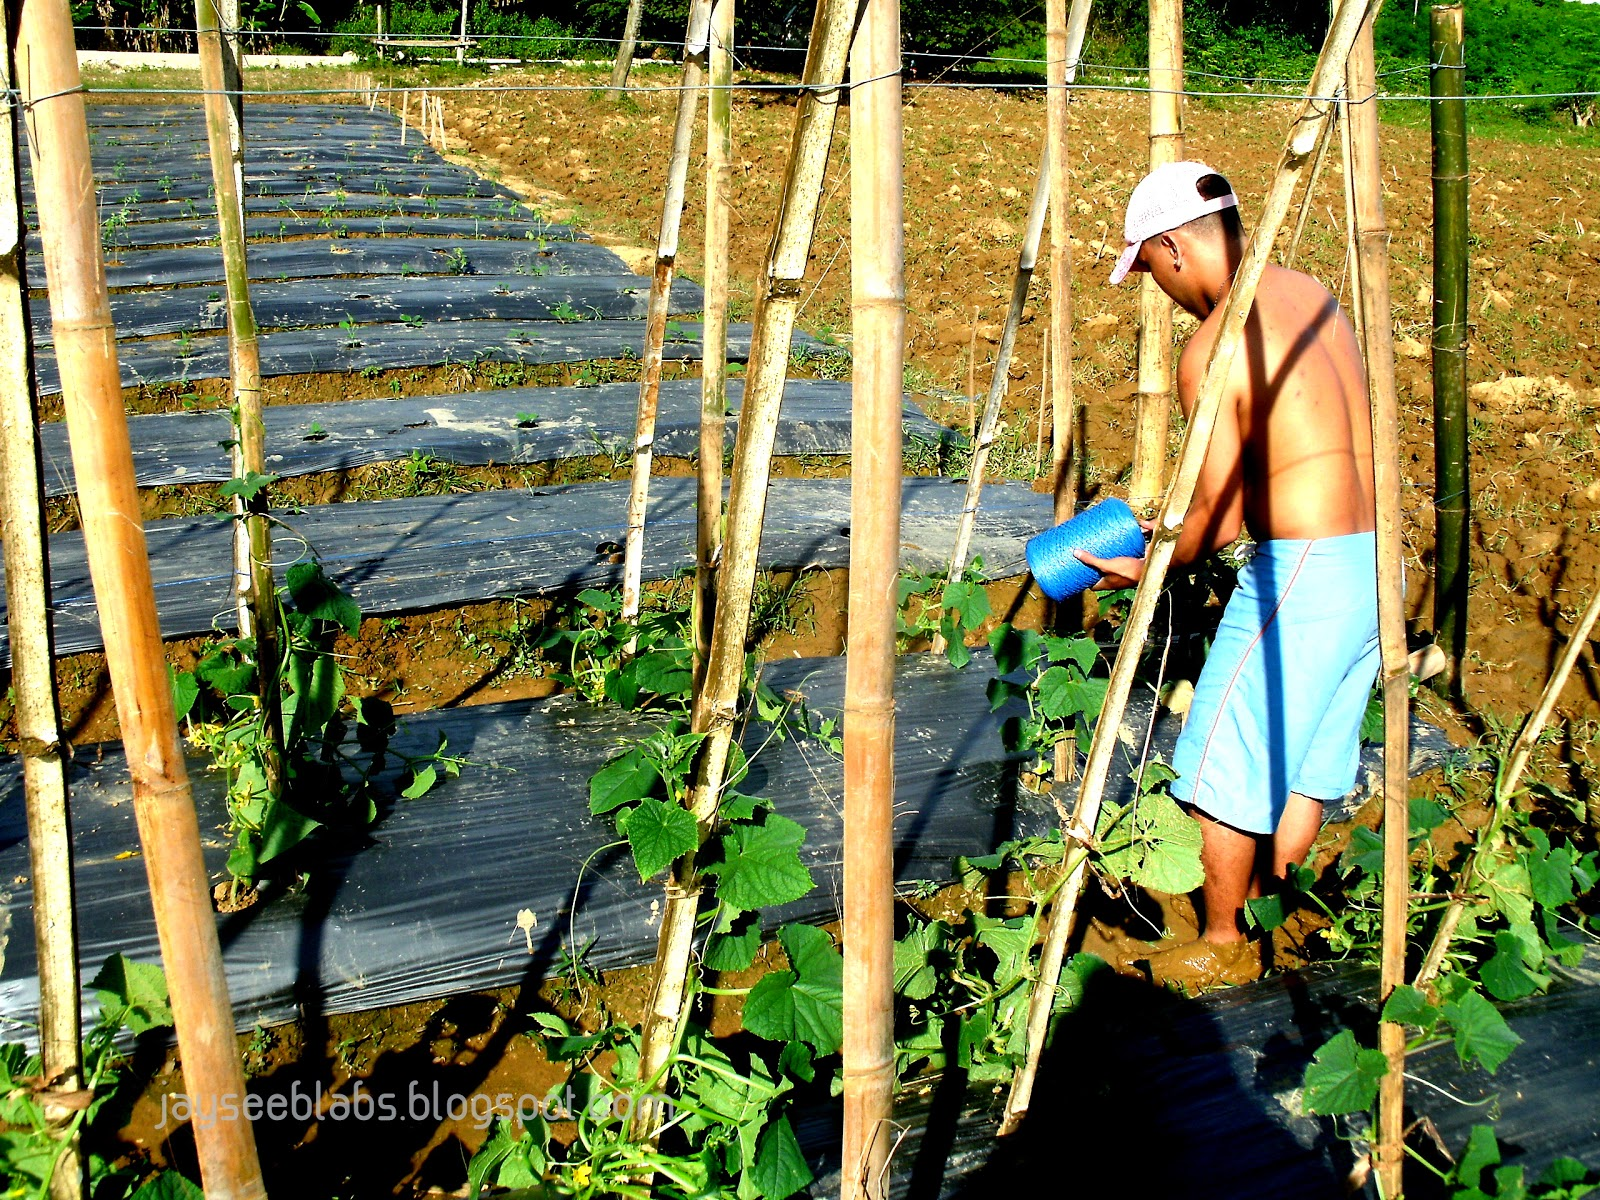 This beautiful farm site where I'm volunteering on is actually located in Brgy. Danglag, Consolacion, Cebu where farmer beneficiaries of the Kabalikat sa Kabuhayan Program are being trained advanced farming techniques. Yep, I learned this new term called mulching where crop beds are actually covered in plastic.